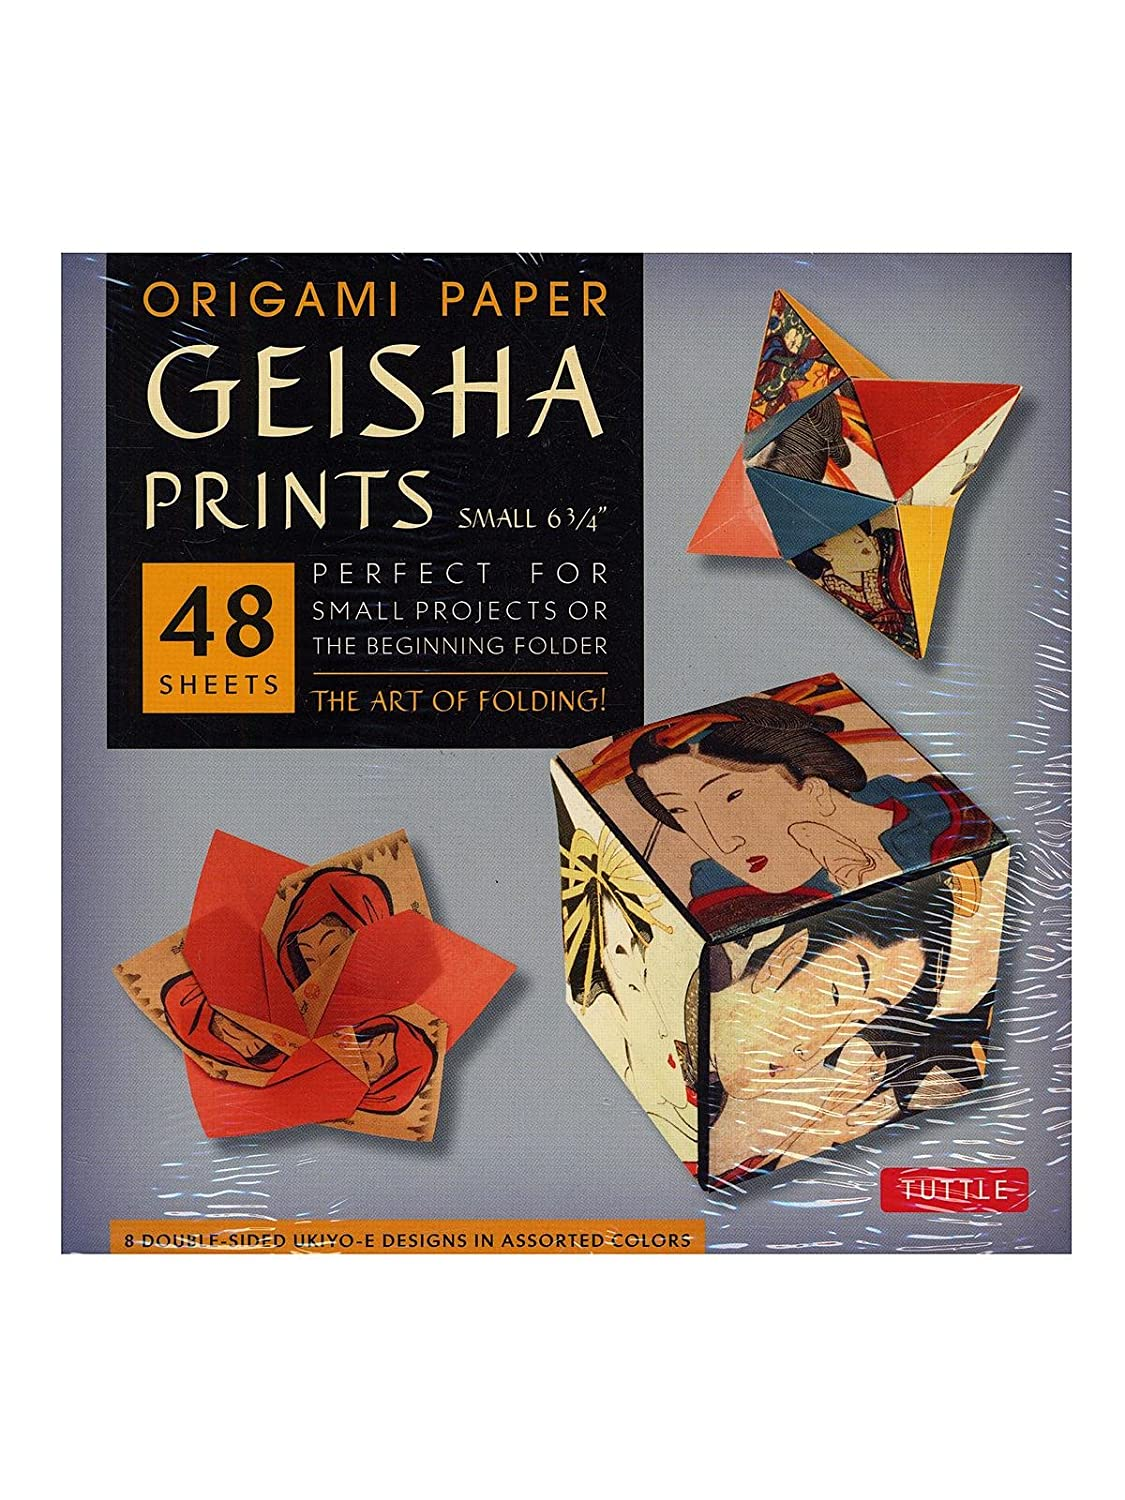 Origami Paper - Samurai Prints - Large 8 1/4' - 48 Sheets: Tuttle Origami Paper: High-Quality Origami Sheets Printed with 8 Different Designs: Instructions for 6 Projects Included Tuttle Publishing 0804843465 ART / Prints CRAFTS & HOBBIES / Origami